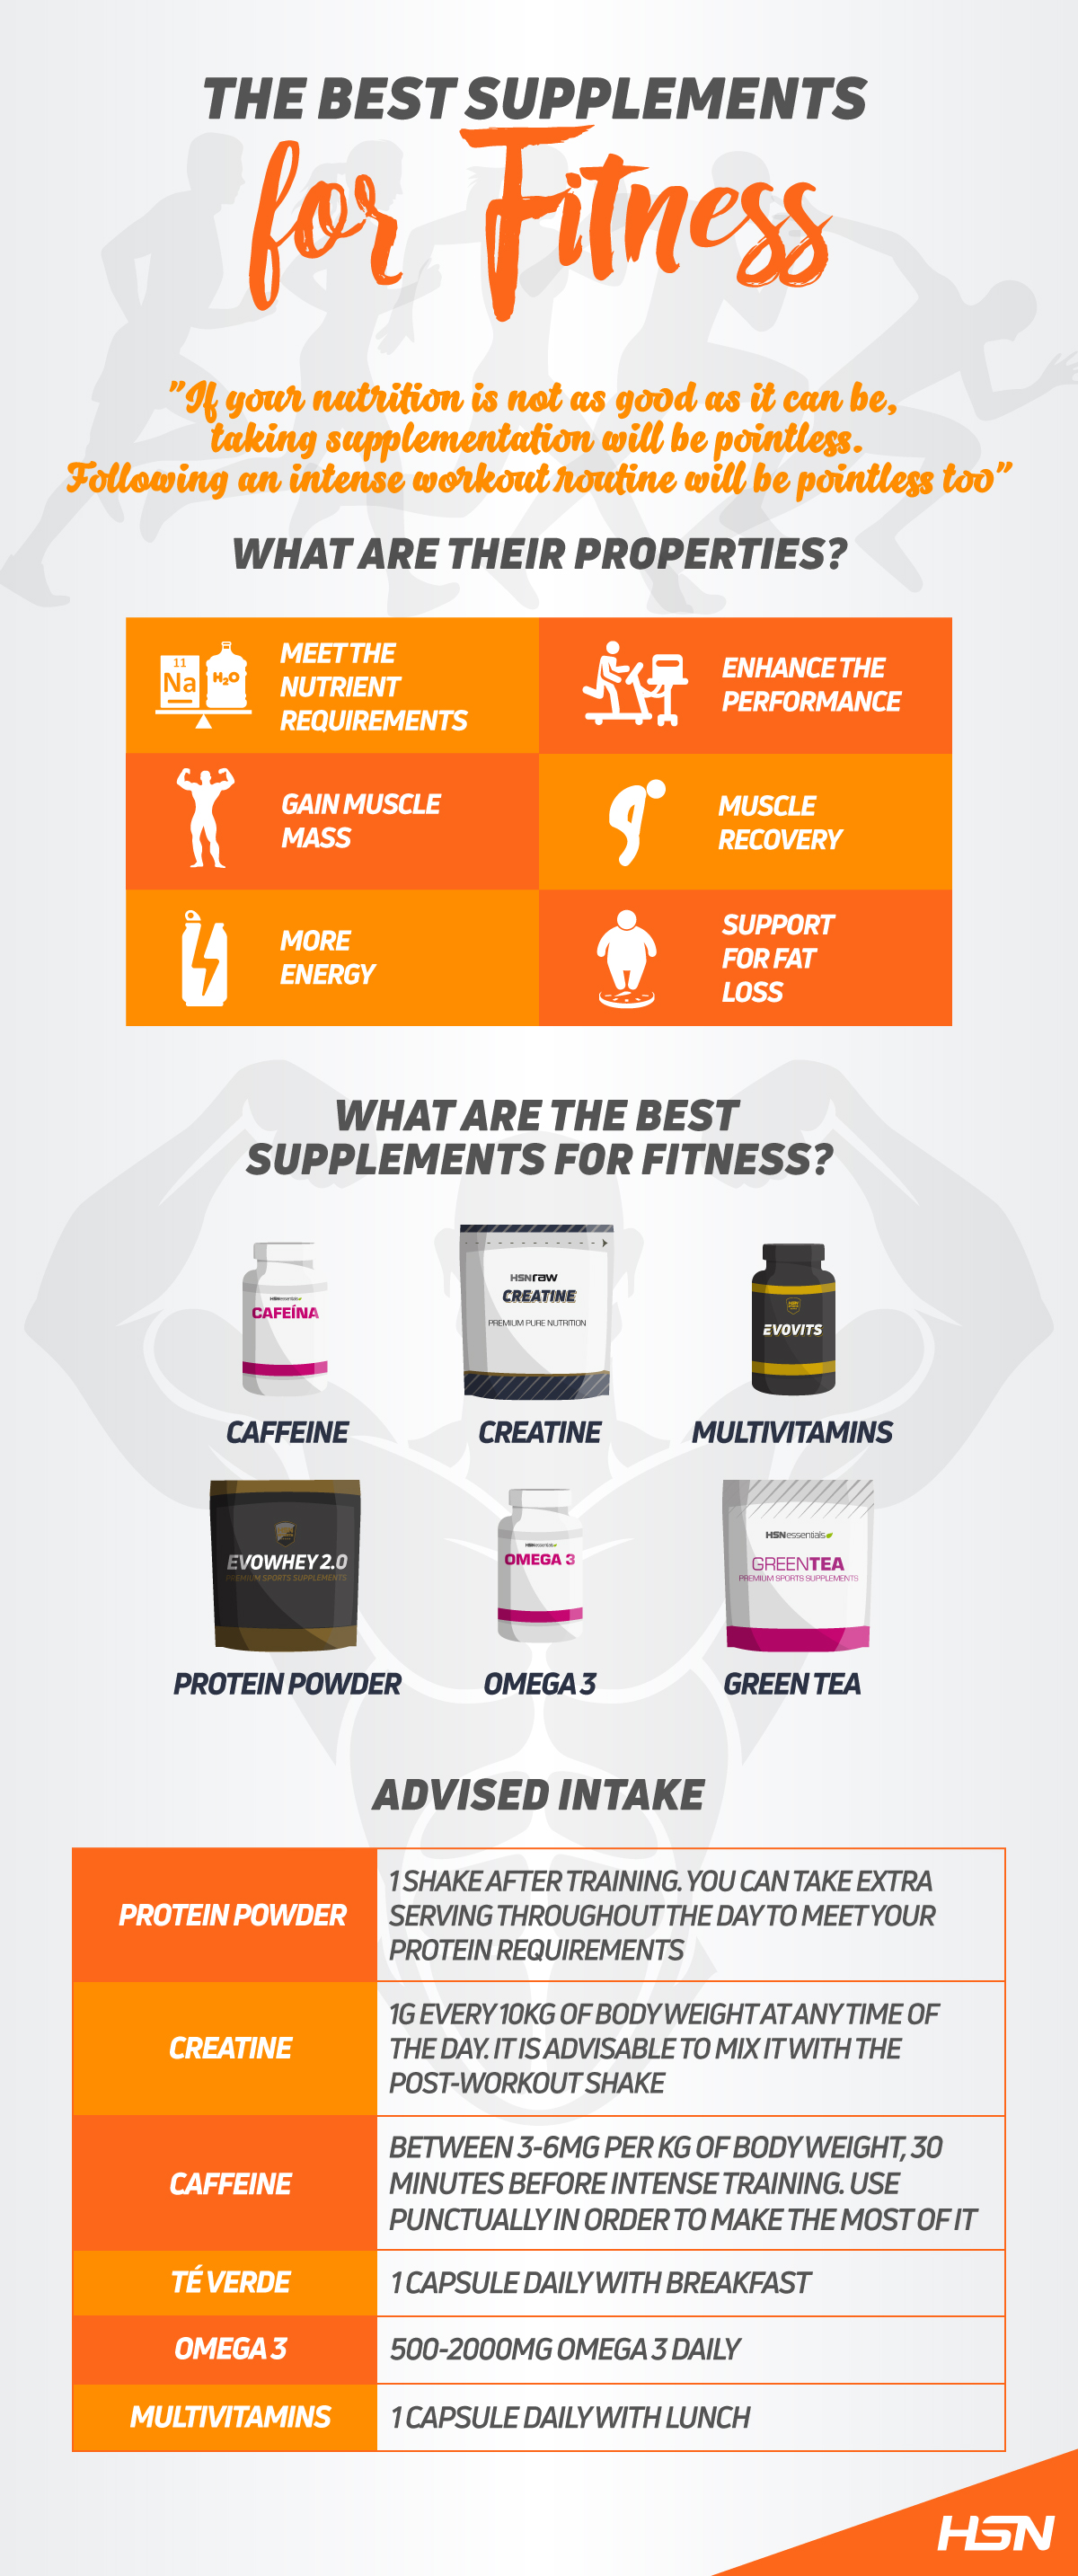 The Best Supplements for Fitness